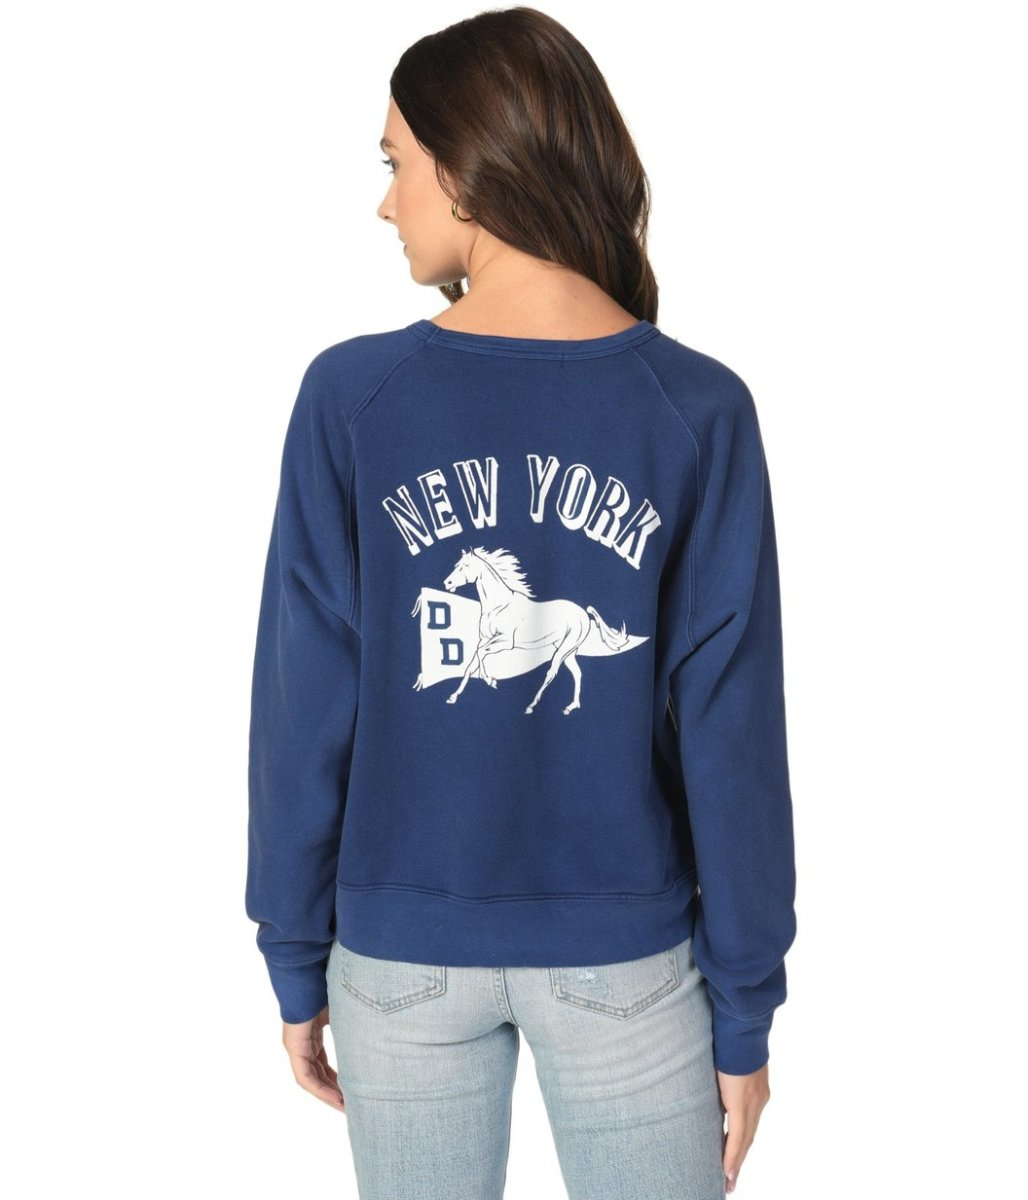 NEW_YORK_SWEATSHIRT_b_1056x1248